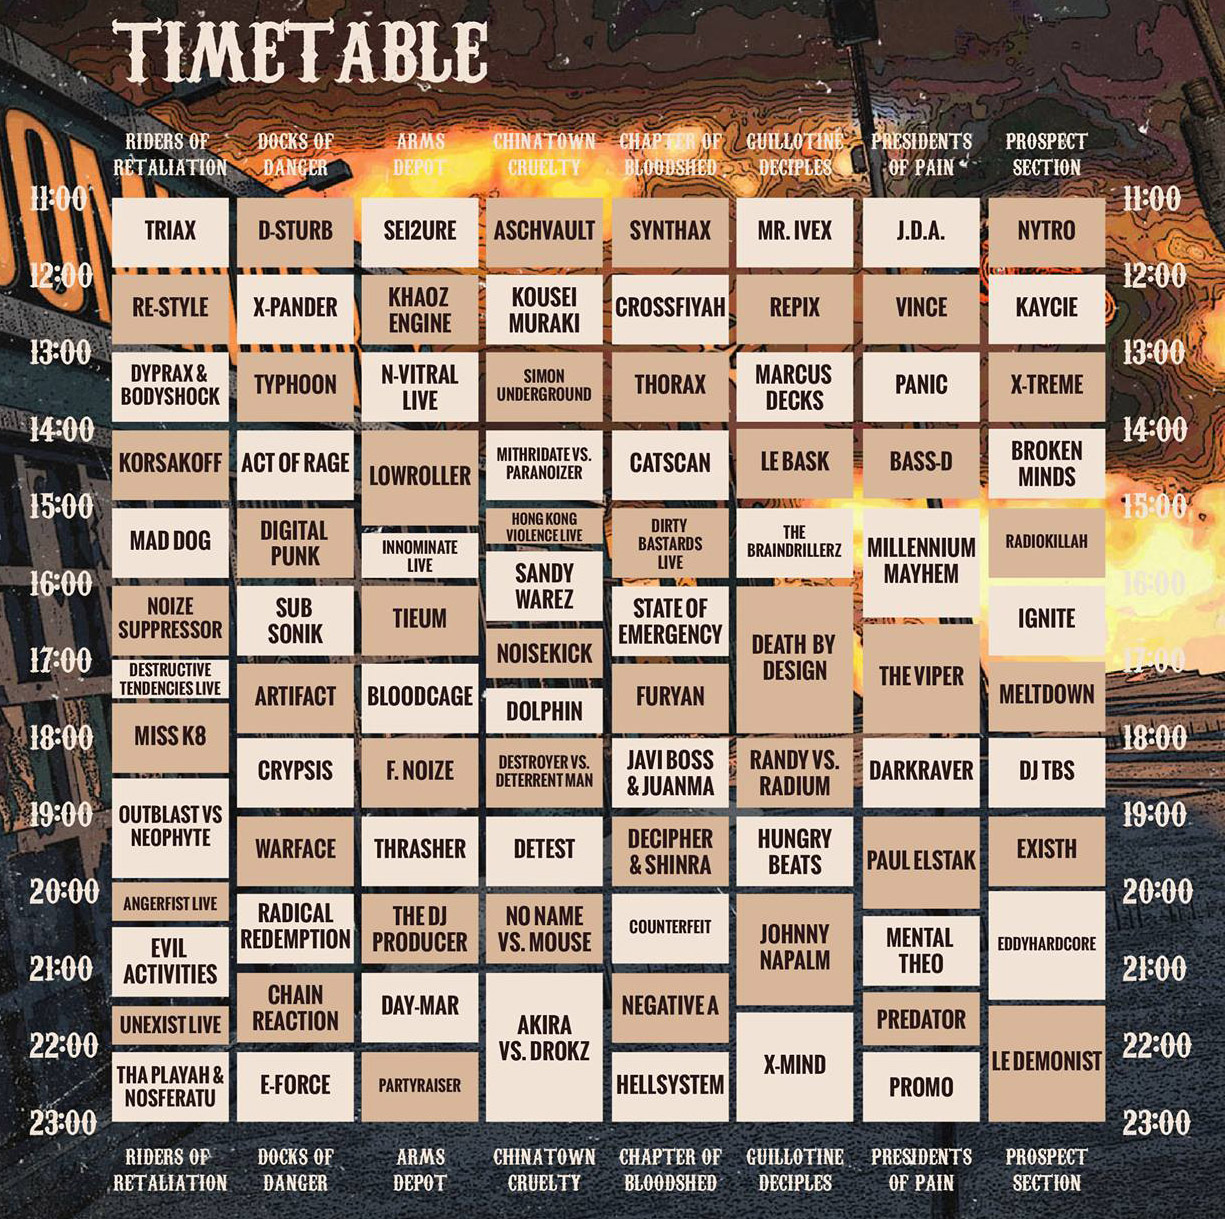 timetable-dominator-2015-big